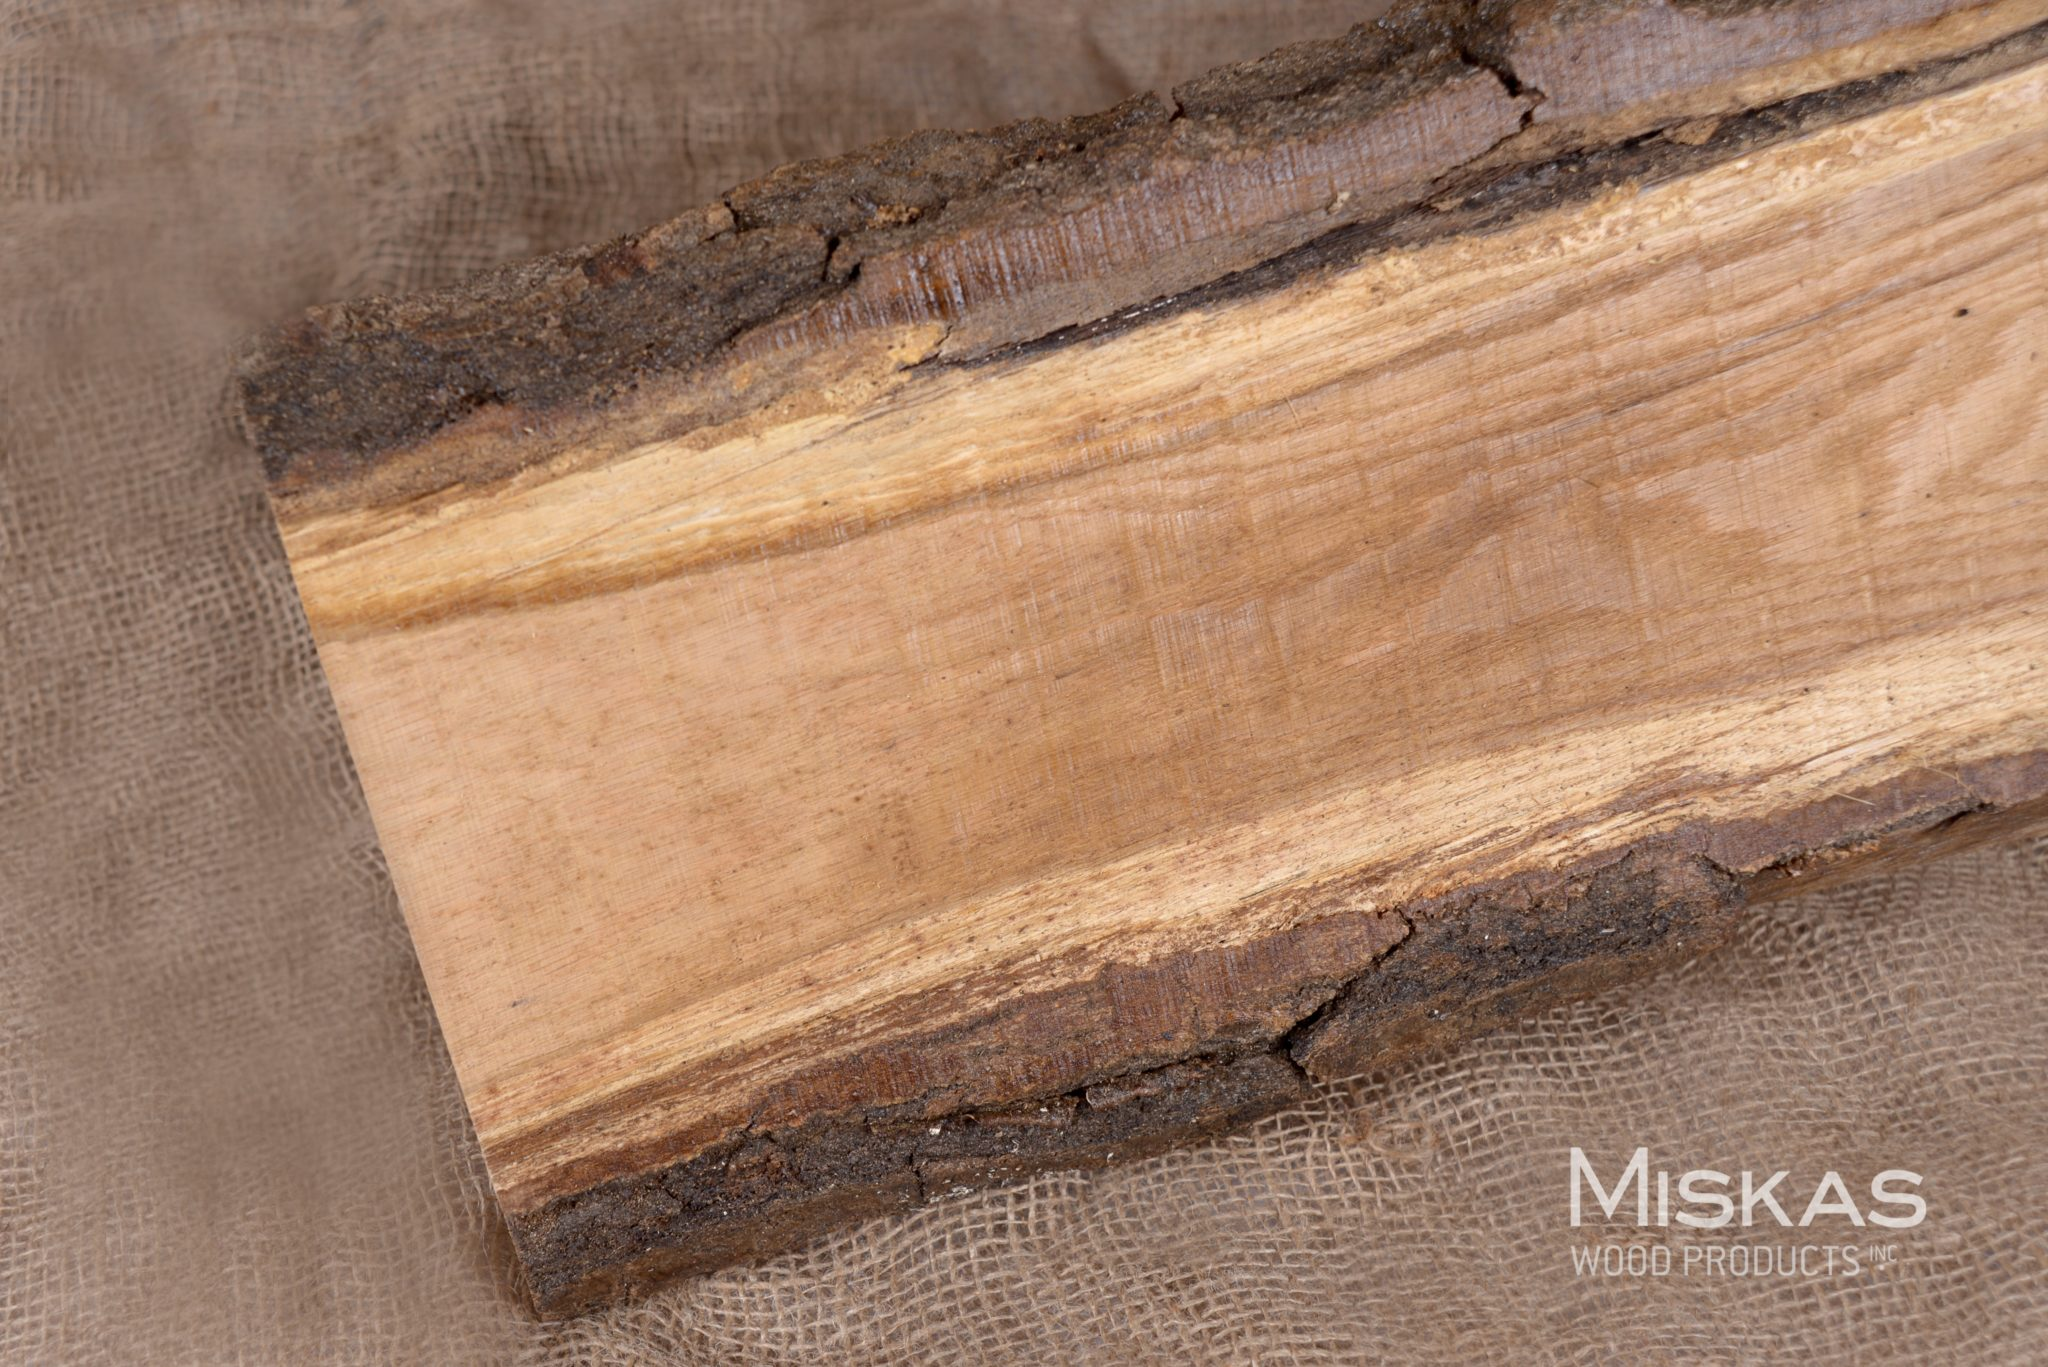 Red oak live edge slabs miskas wood products inc for Finishing live edge wood